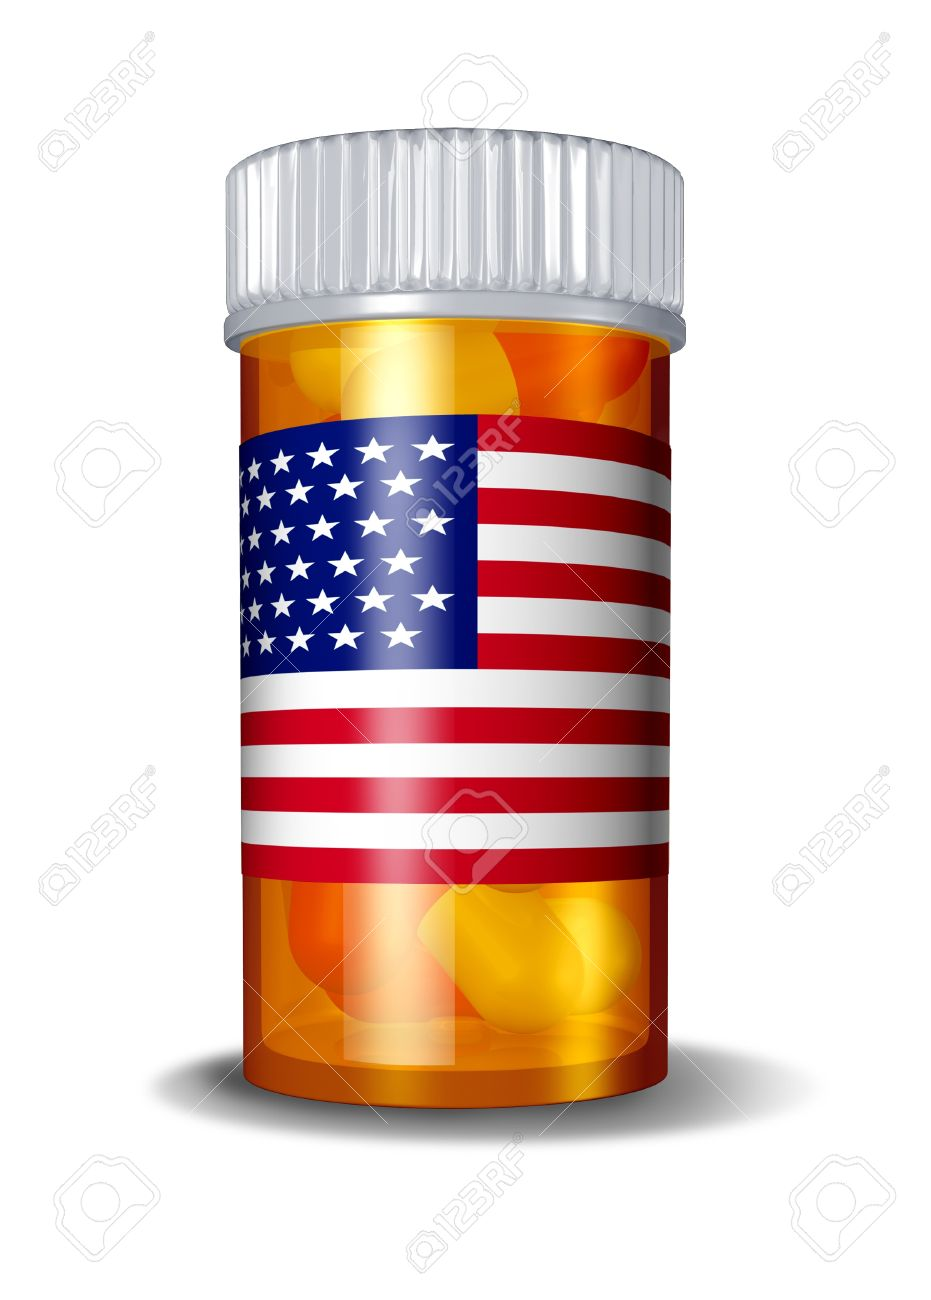 American health care and United States medical system with a USA flag on a medicine label over a bottle of pills on a white background as a symbol of government policy over the pharmaceutical industry. Stock Photo - 11840327